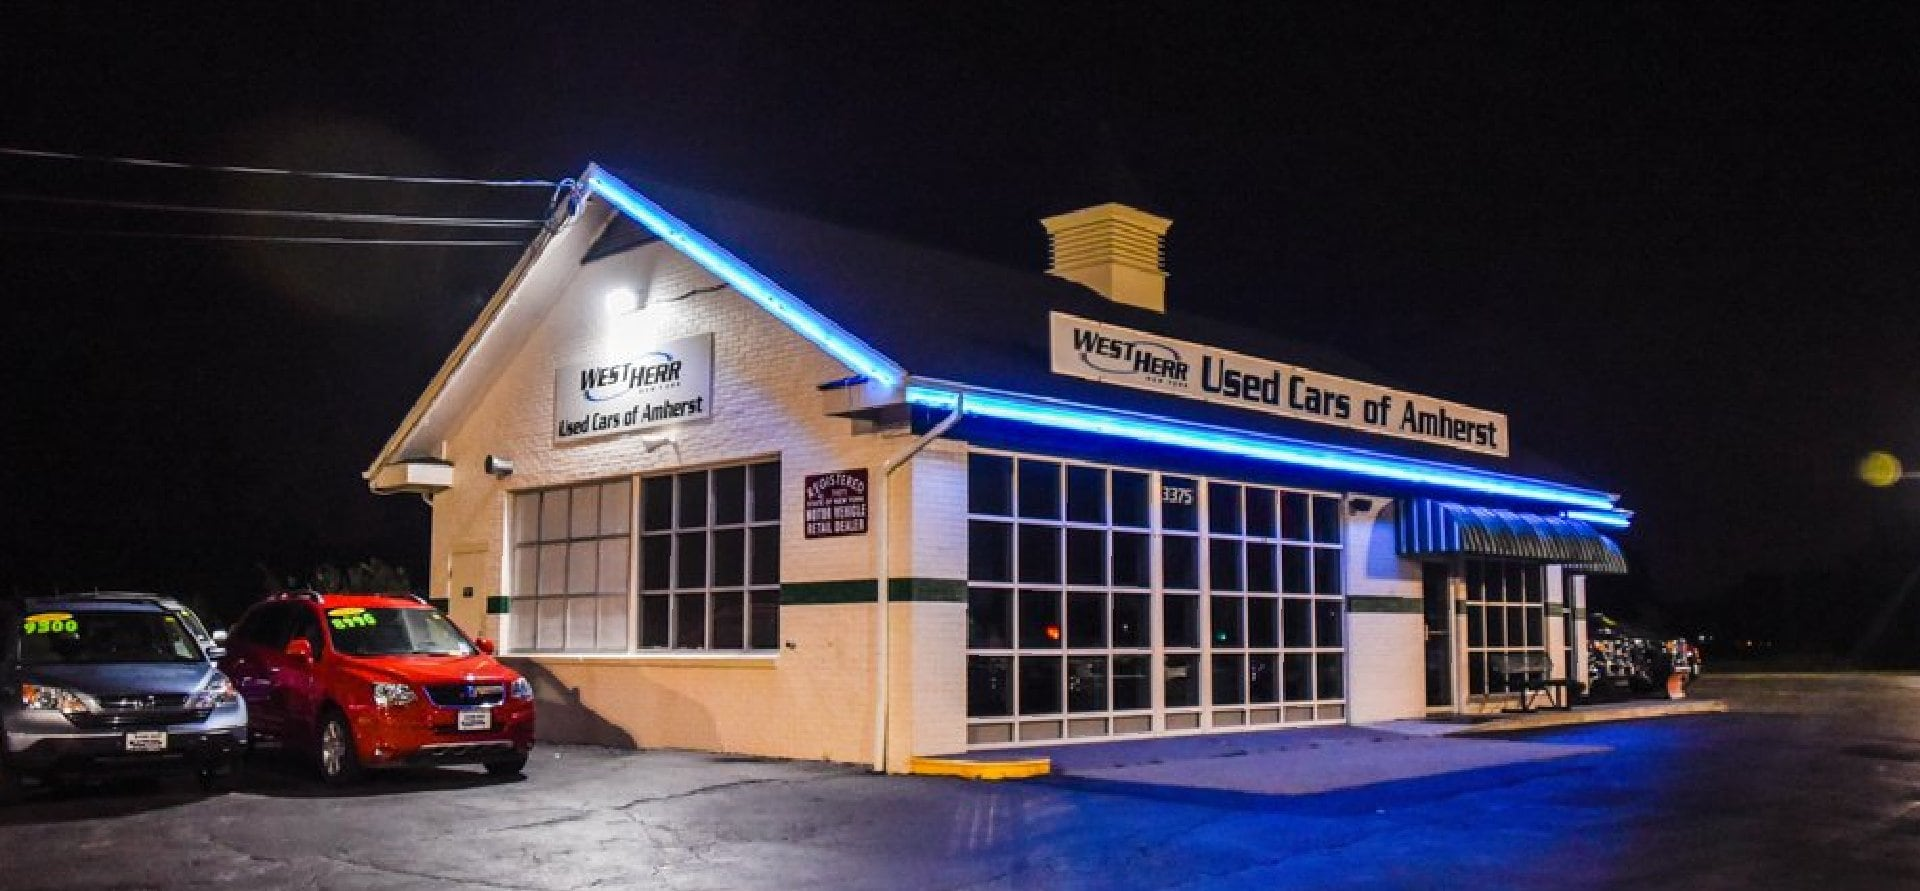 West Herr Used Cars of Amherst, dealership exterior